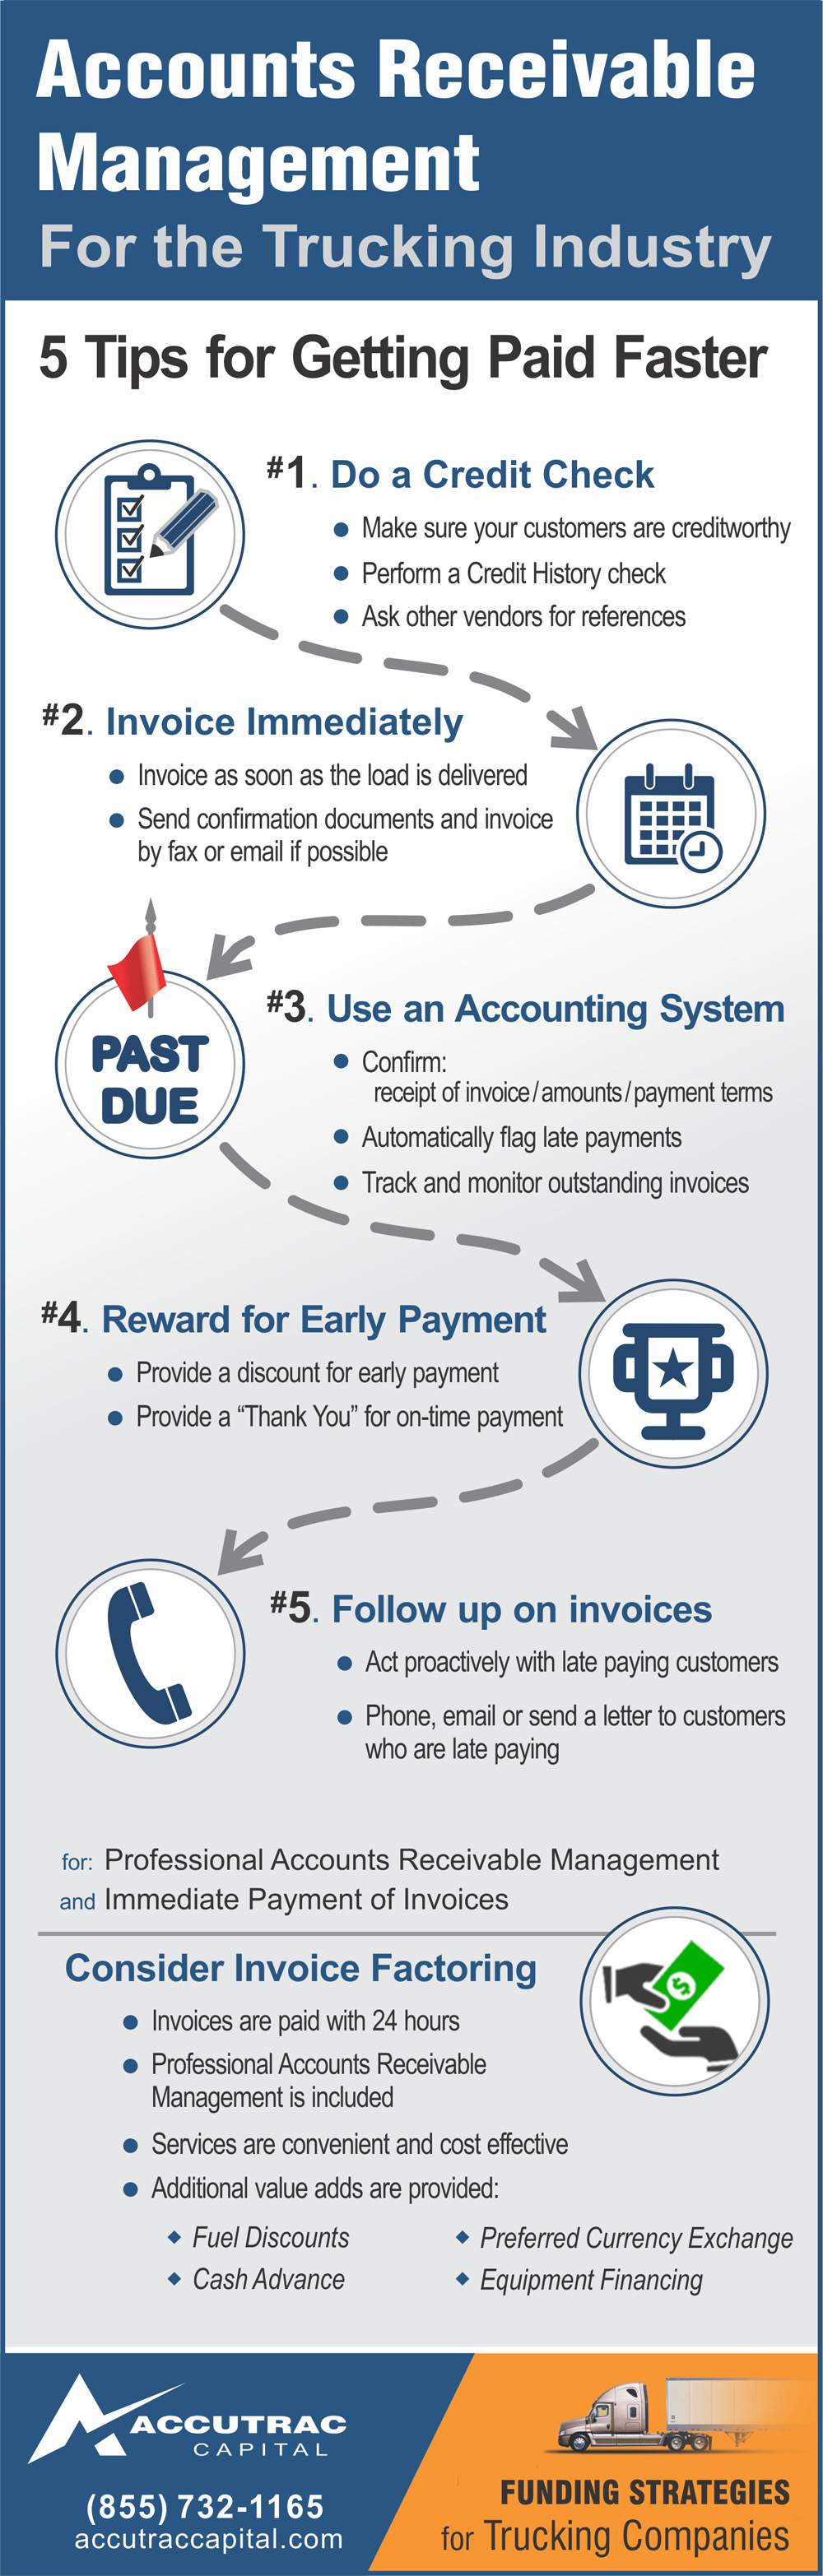 Accounts Receivable Management for Trucking